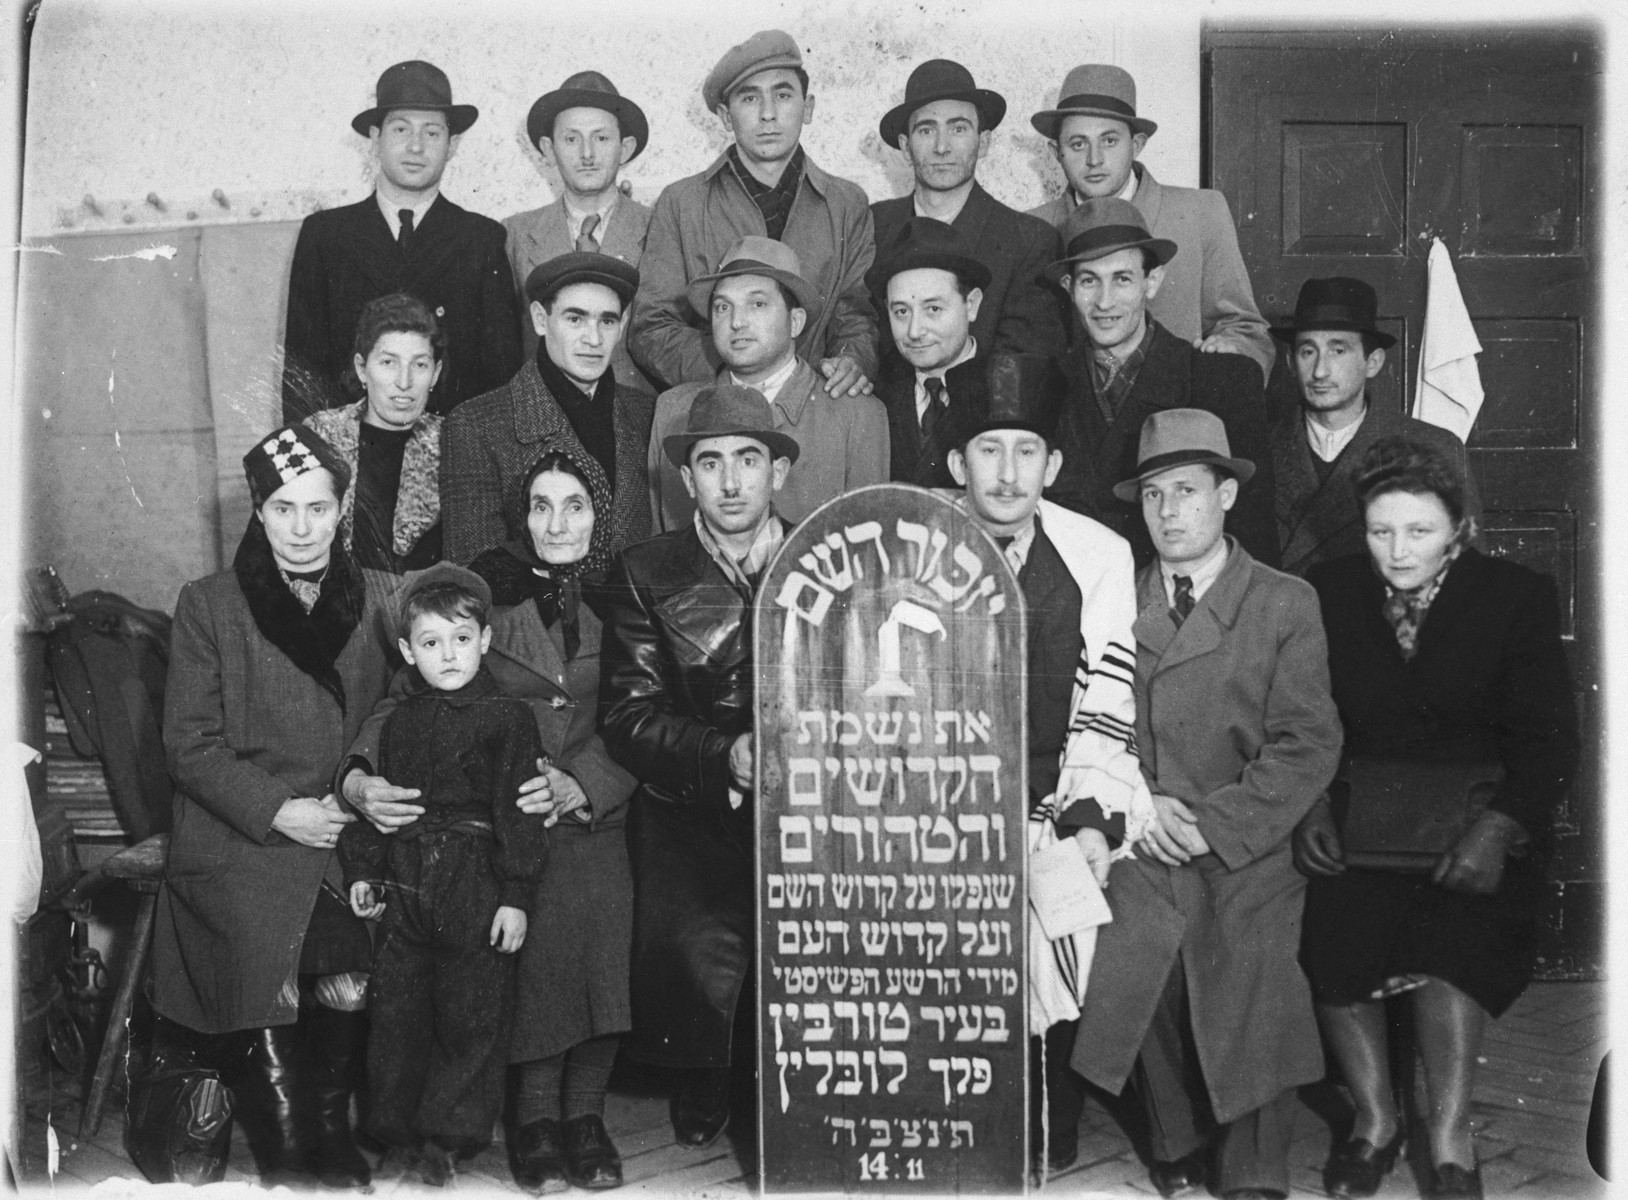 Jewish survivors from Turobin pose with a memorial plaque commemorating the victims of Nazism from their community.  Cantor Iber is pictured in the tallit.  Trained in the Vilna Conservatory, he served as the cantor in the Ulm DP camp.